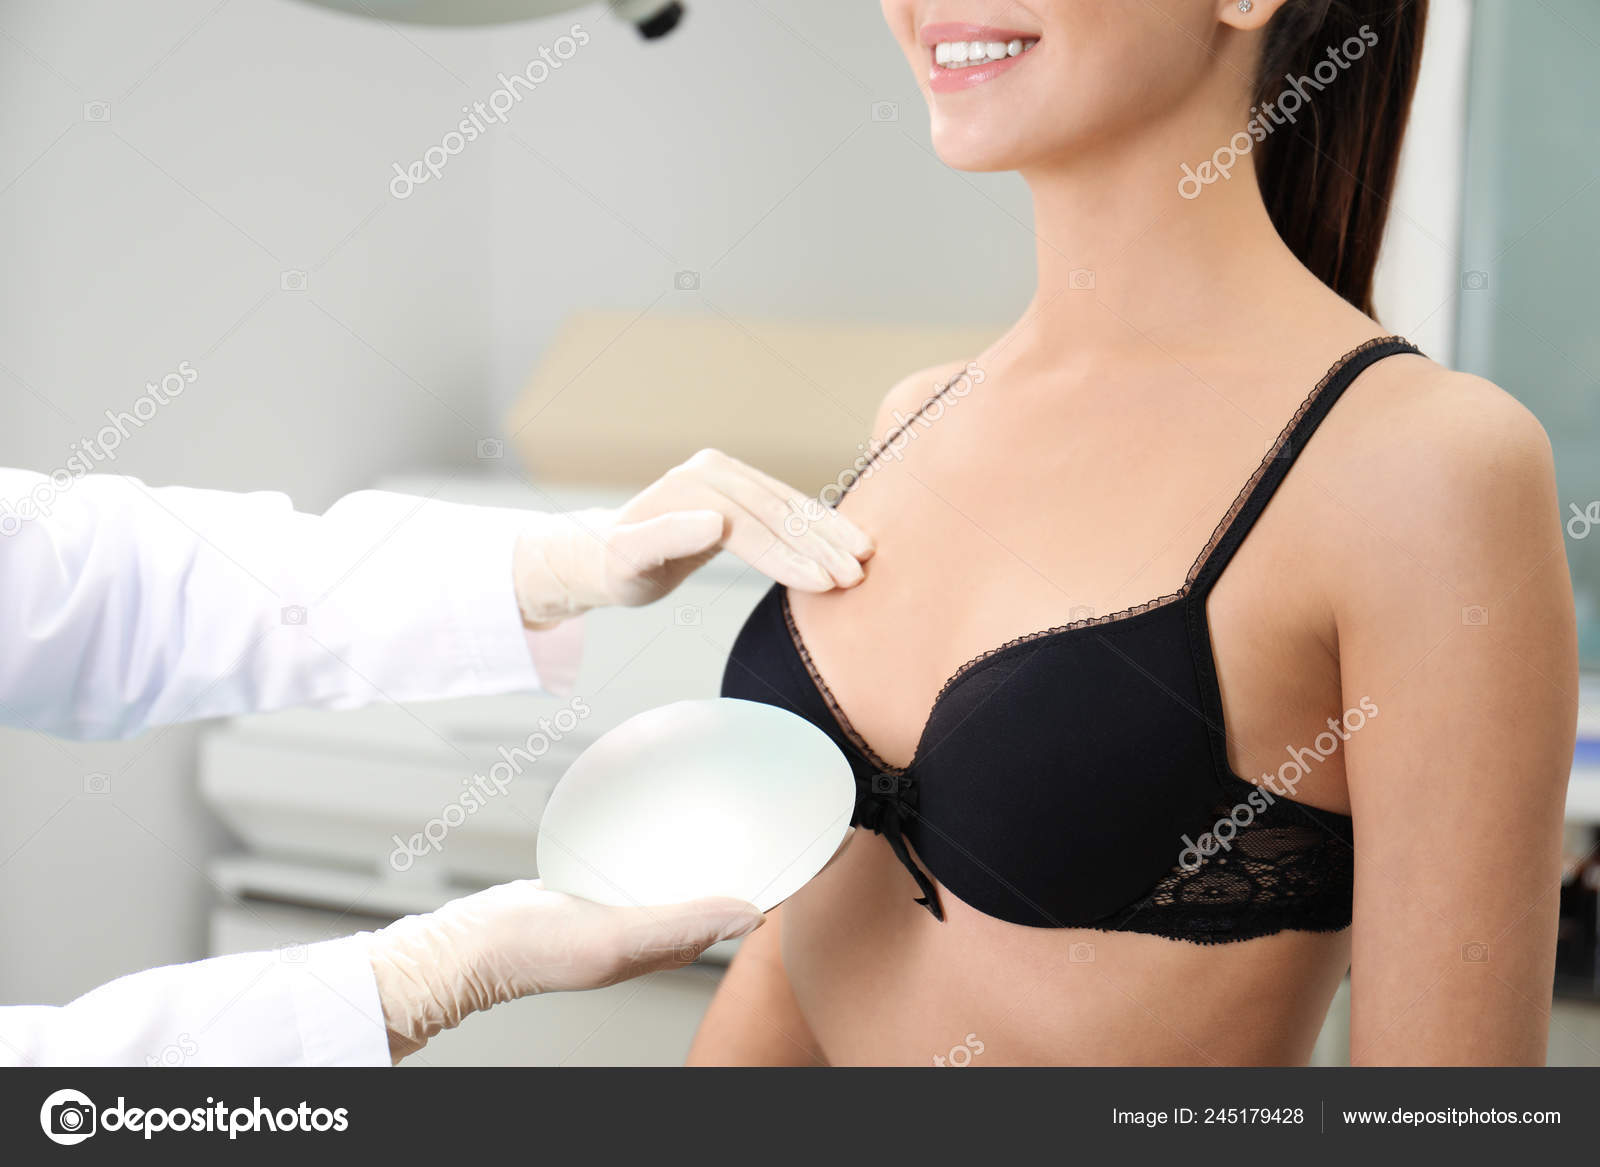 cosmetic implant breast